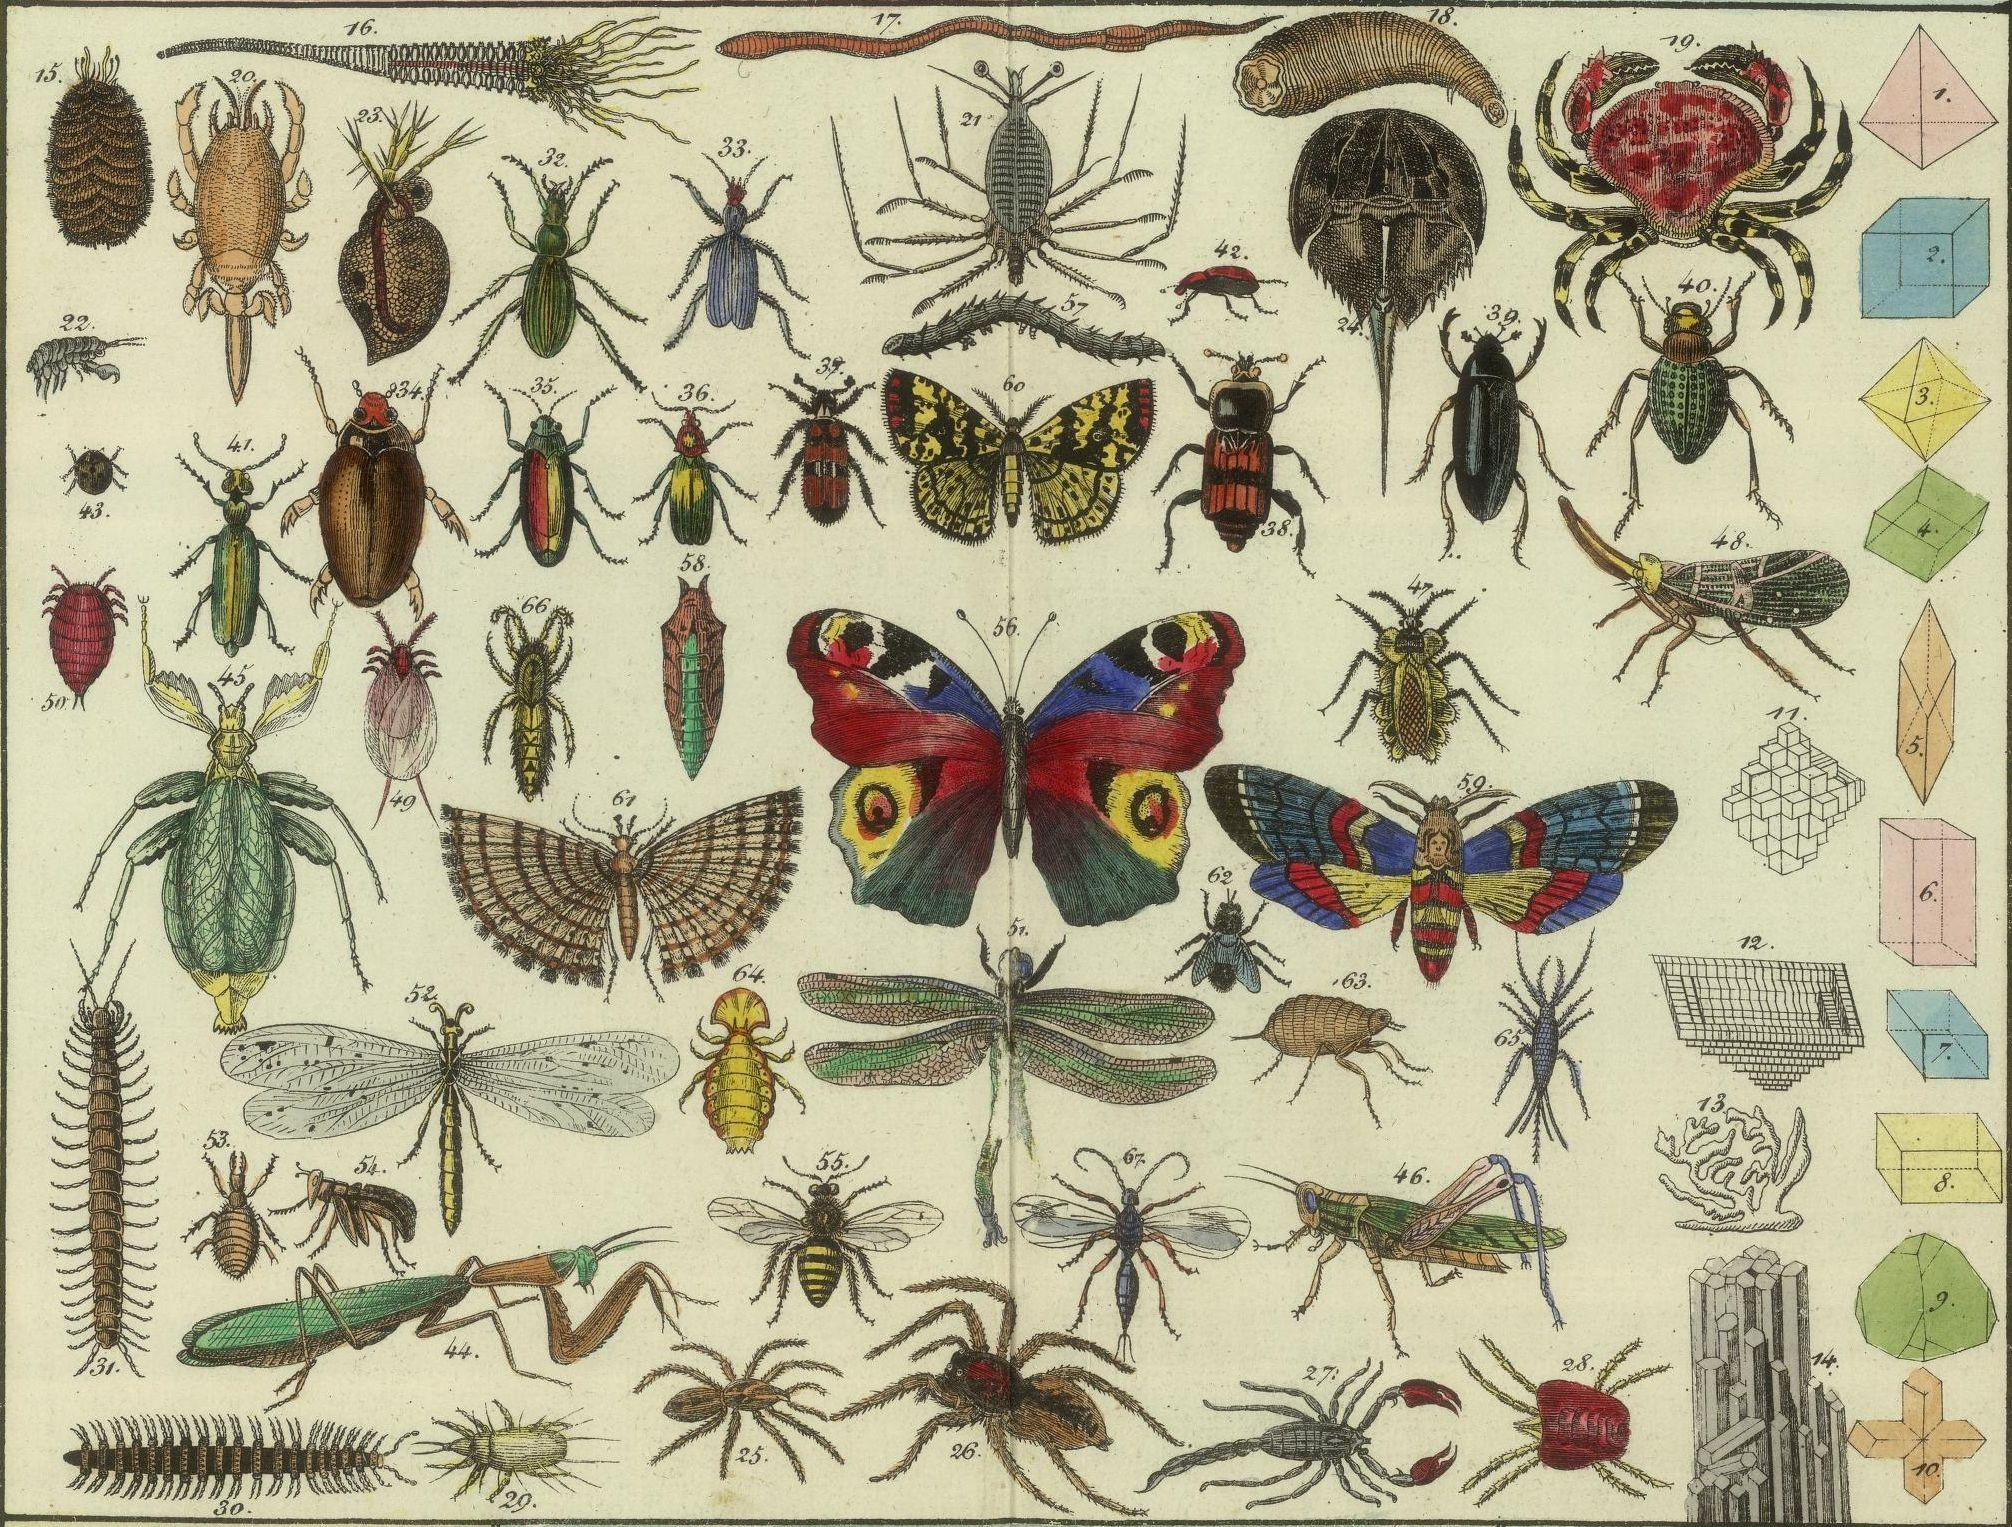 All sizes | Tableau d'histoire naturelle Annelides, Crustaces, Arachnides, etc, 1834 (detail) | Flickr - Photo Sharing!